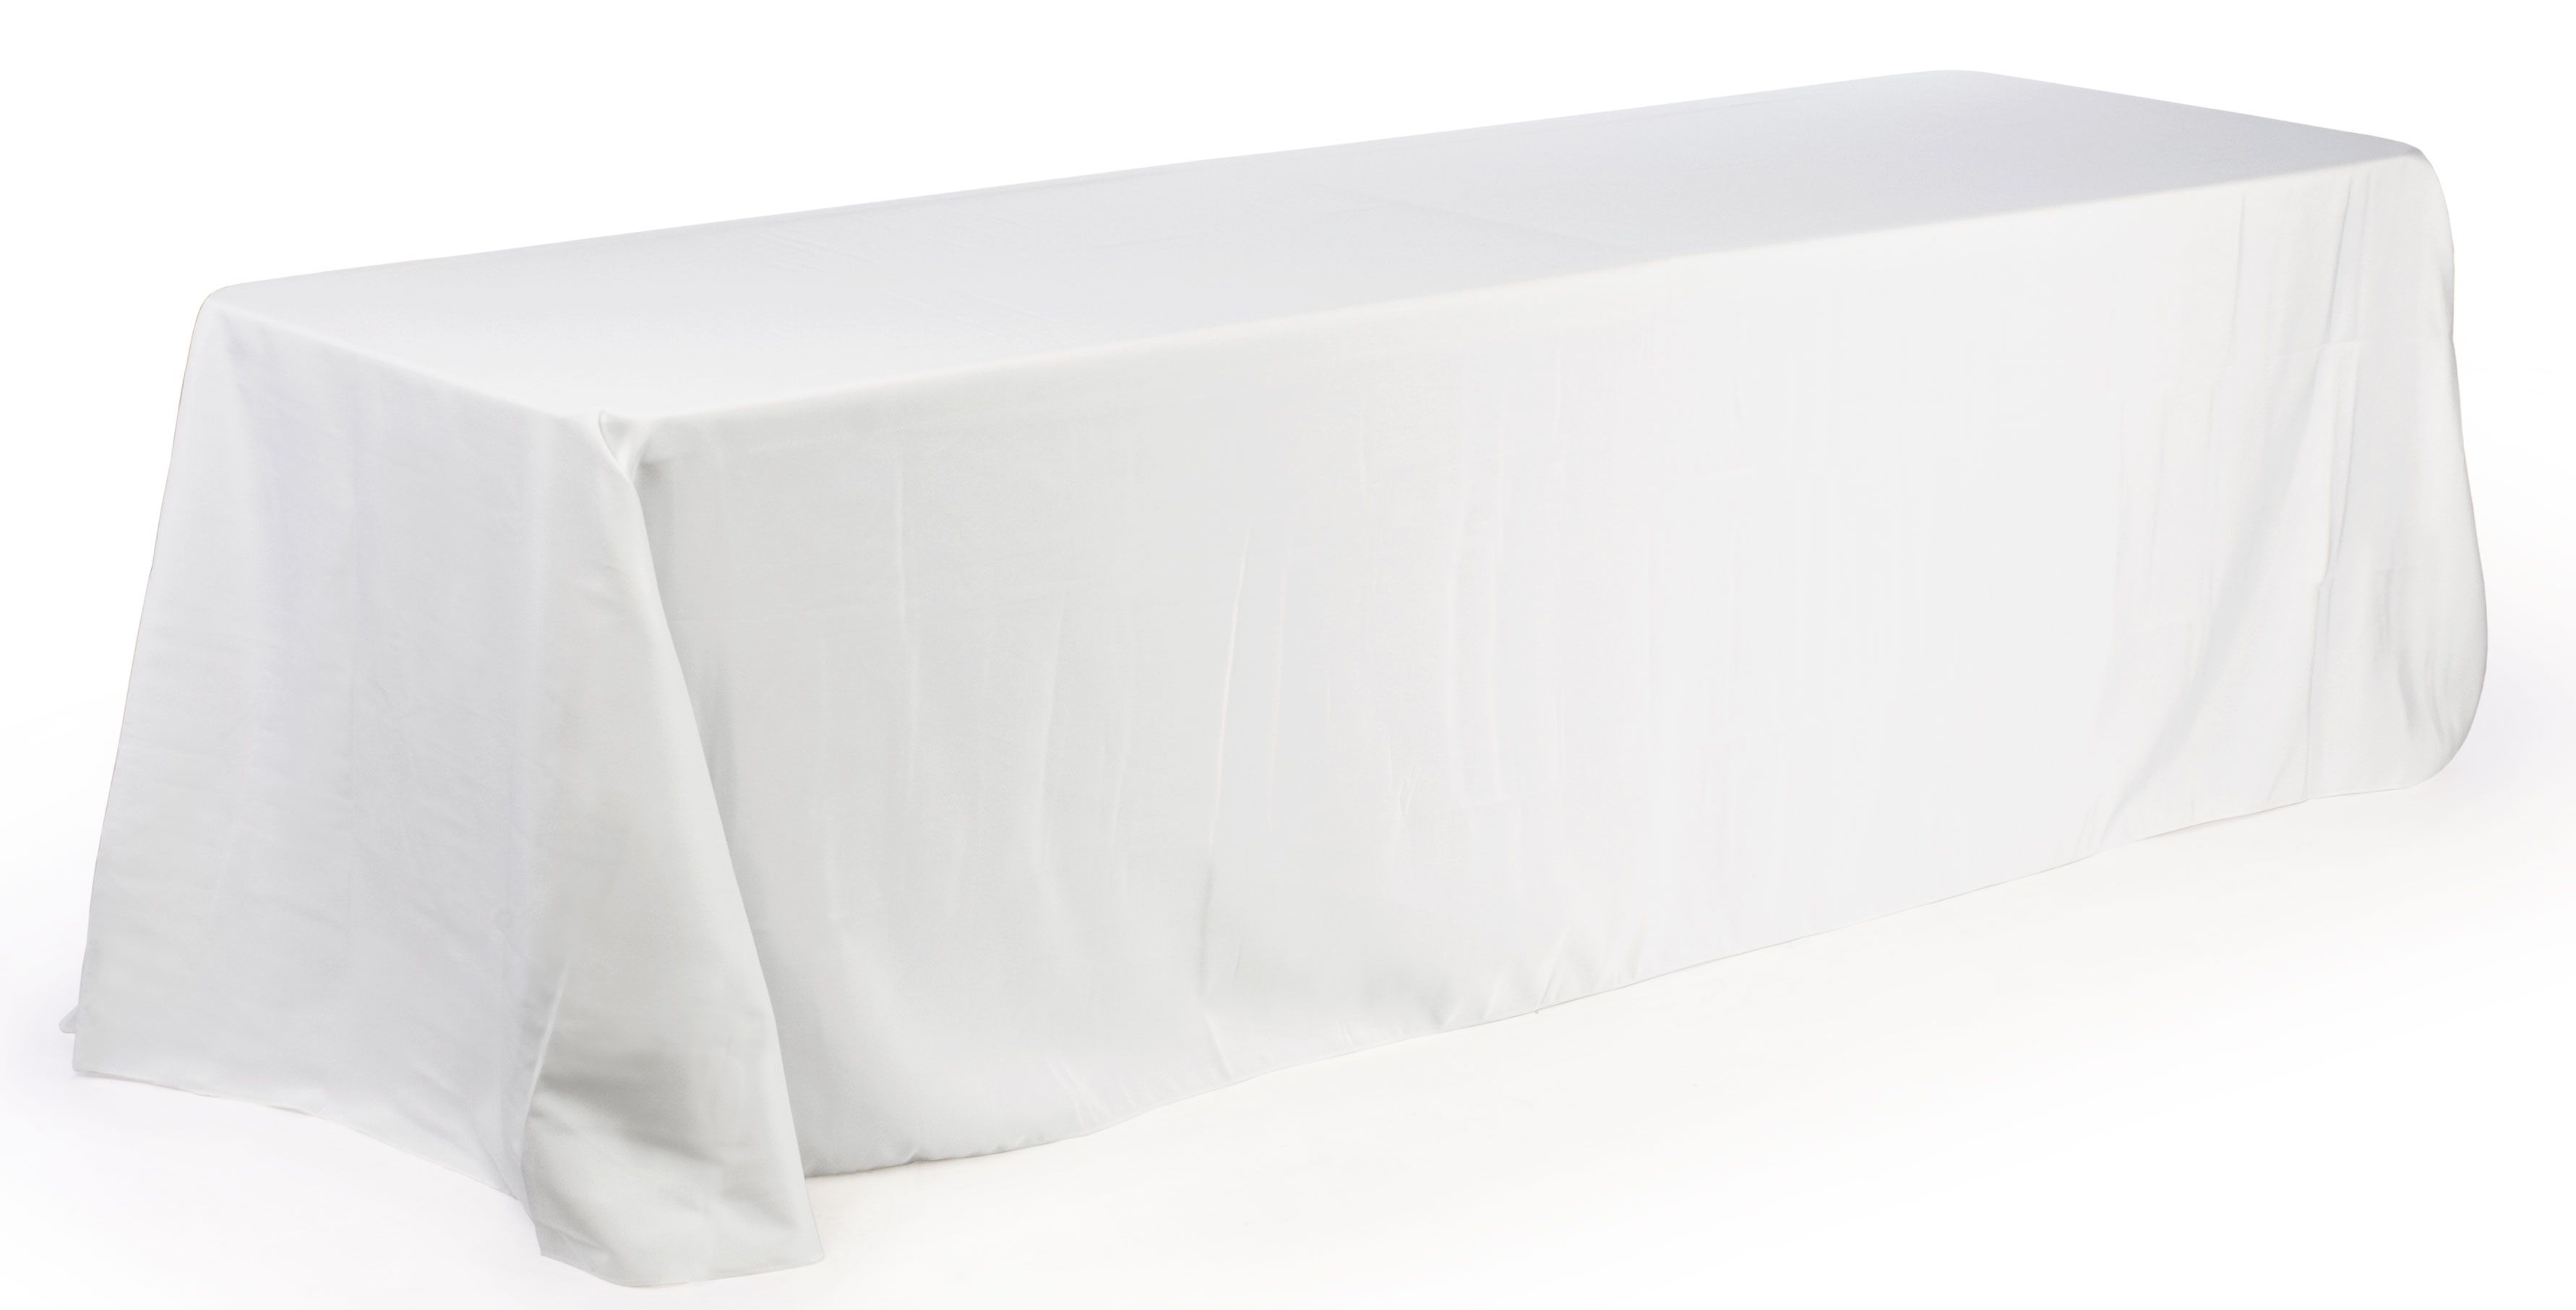 6u0027 Table Cloth, Round Corners   White